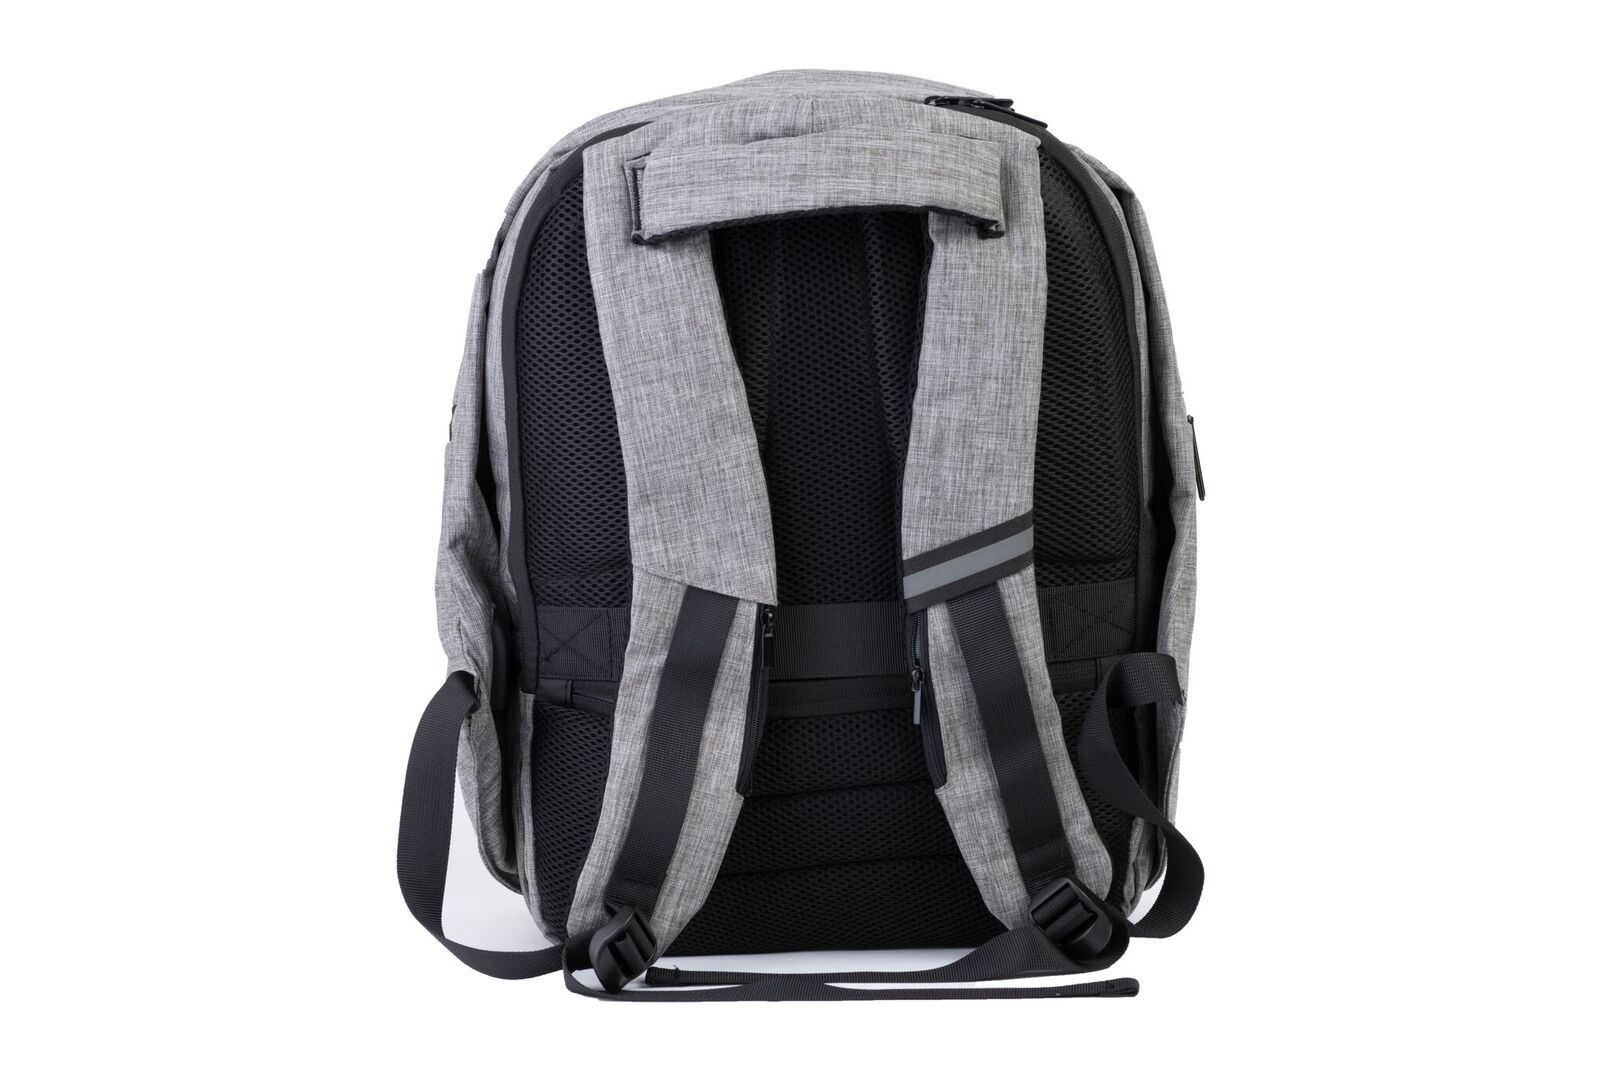 back strap view of snug anti theft backpack photo different color design